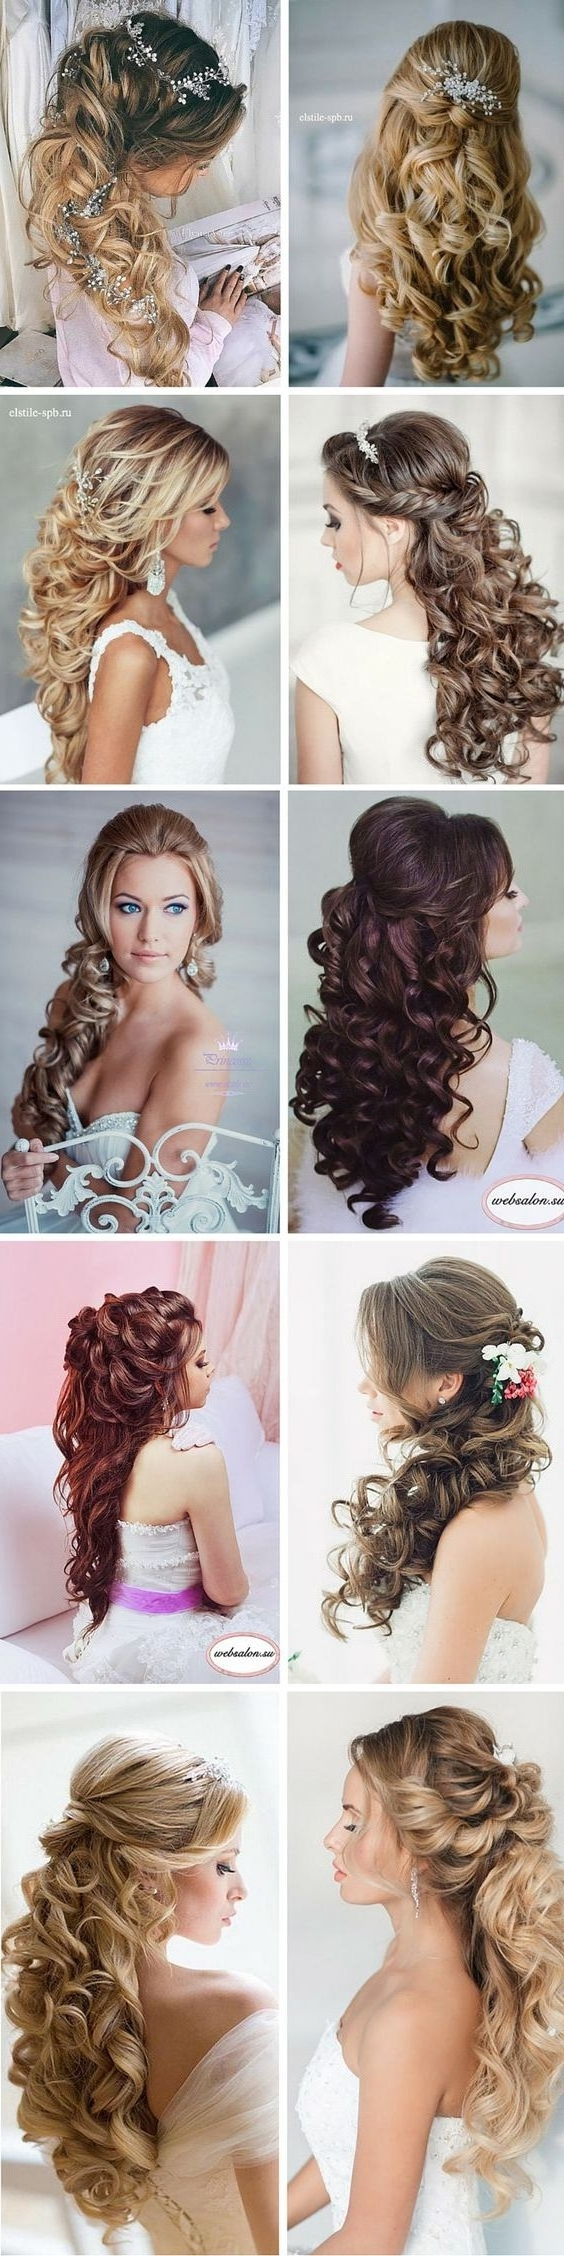 100+ Romantic Long Wedding Hairstyles 2018 – Curls, Half Up, Updos Pertaining To Trendy Wedding Hairstyles For Young Brides (View 4 of 15)